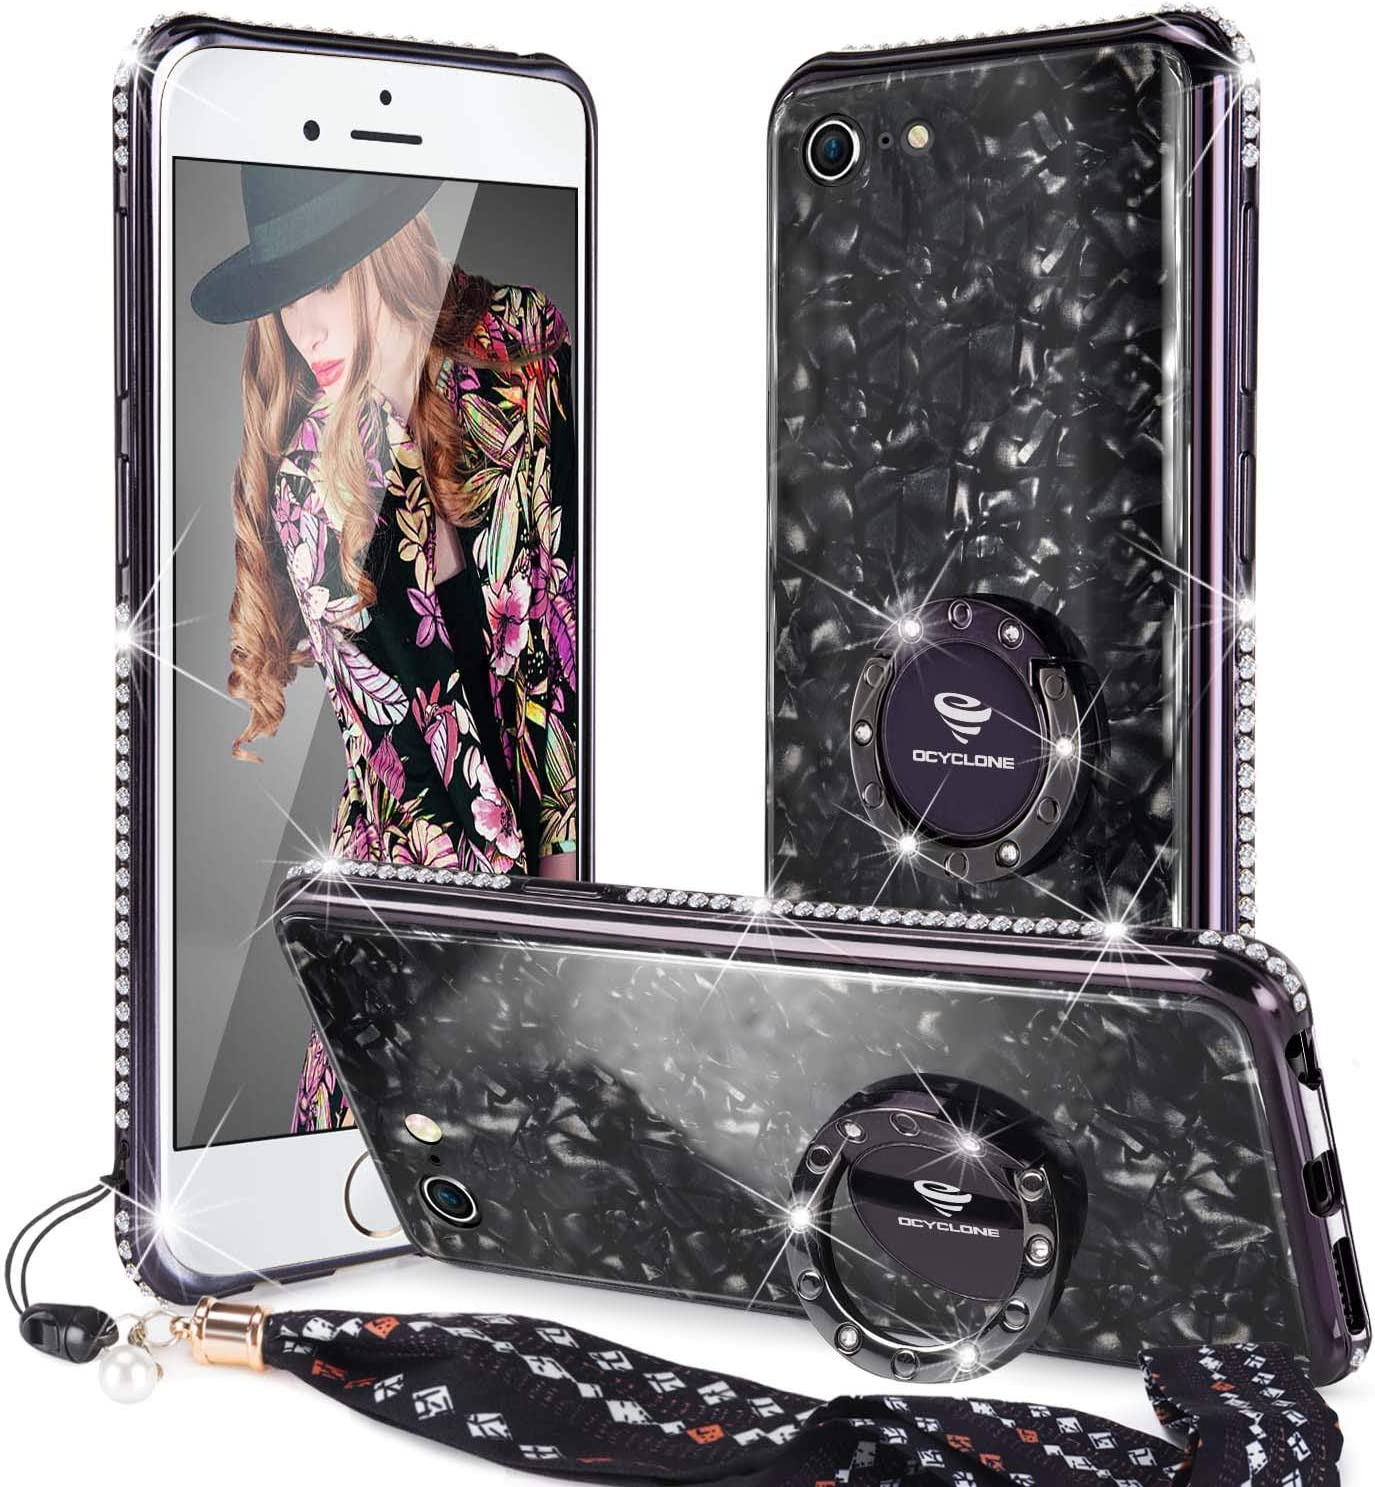 iPhone 6s Plus/ 6 Plus Case Glitter with Ring Holder Grip Kickstand for Women Girls, [Tempered Glass] Bling Diamond Bumper Ring Stand Cute Protective iPhone 6 Plus Case, iPhone 6s Plus Case - Black